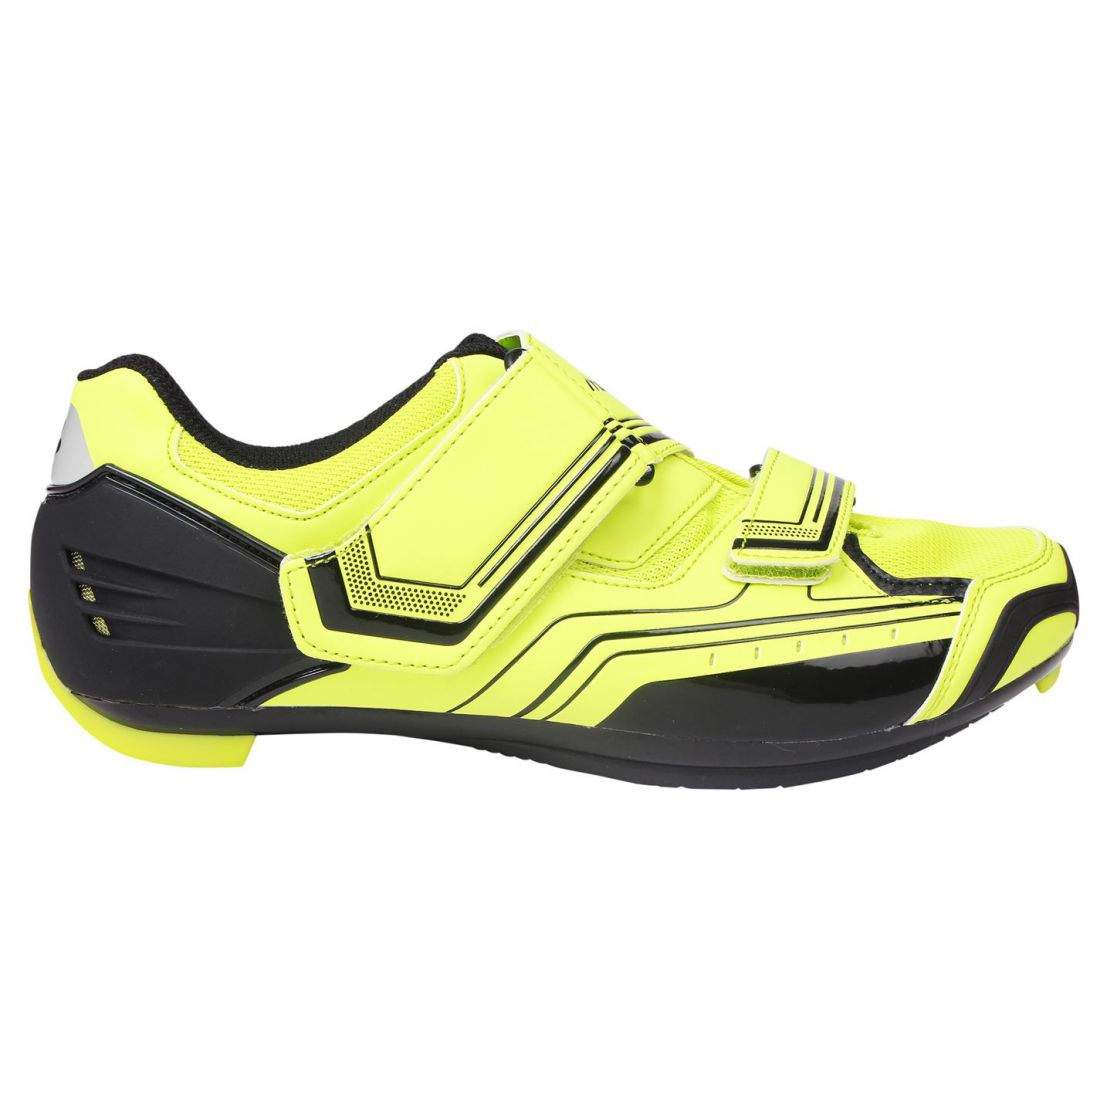 Image is loading Muddyfox-Mens-RBS100-Cycling-Shoes-Breathable-Cycle-Bike- 16f4f6f0bf